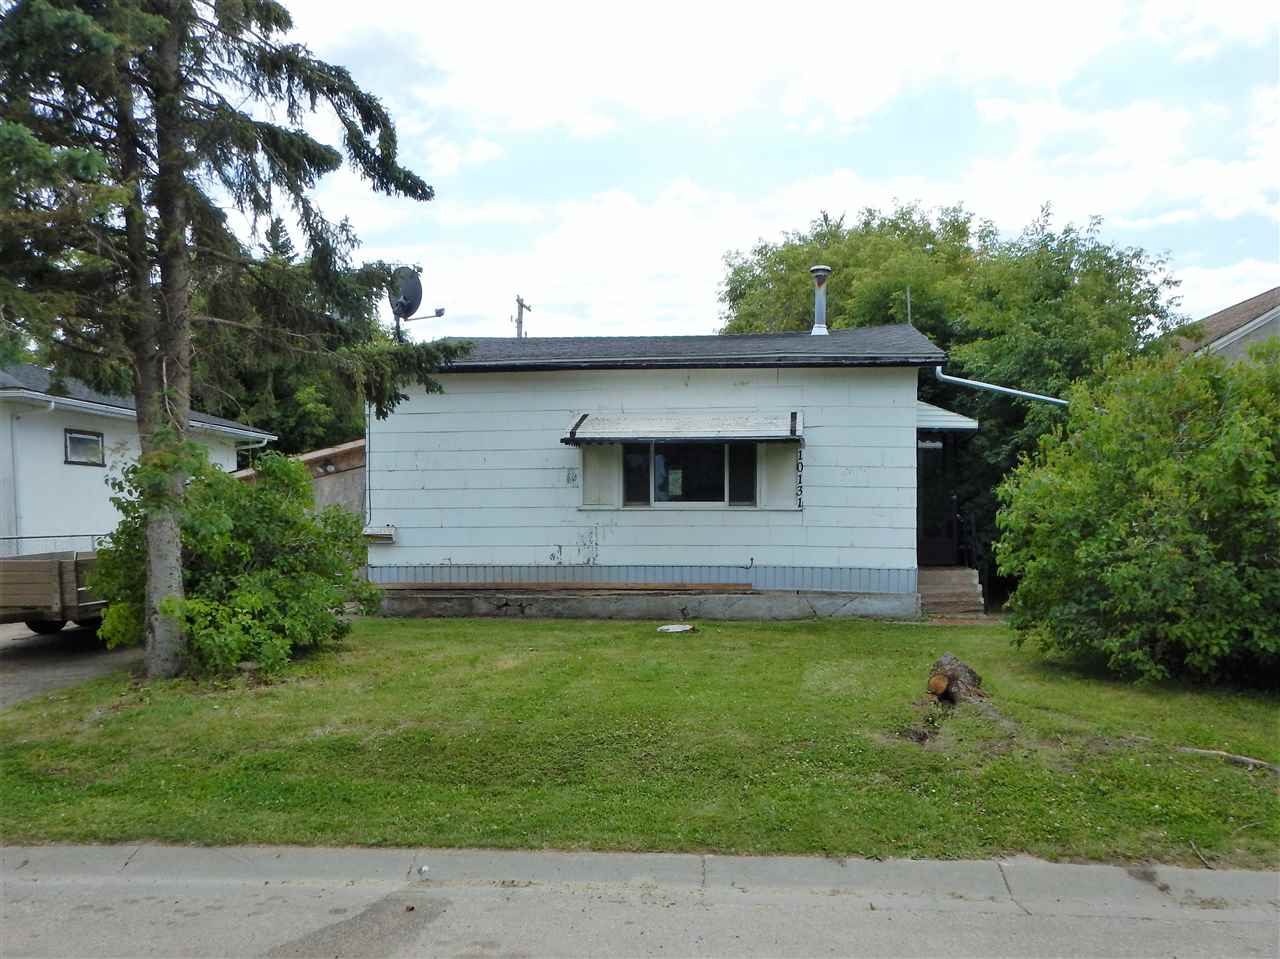 Great investment/rental property. This 2 bedroom home is centrally located near the high school and is walking distance to anywhere in Westlock. The lot is in a mature neighborhood and has extra privacy with a no exit back alley. Good sized lot. Plenty of room for a garage in the back. Lean-to on the side of the house that can be used for storage or it could be opened up and used as a carport. Nice value today and nice value in the future for development. Currently rented. Please give at least 24 hours notice for viewing.